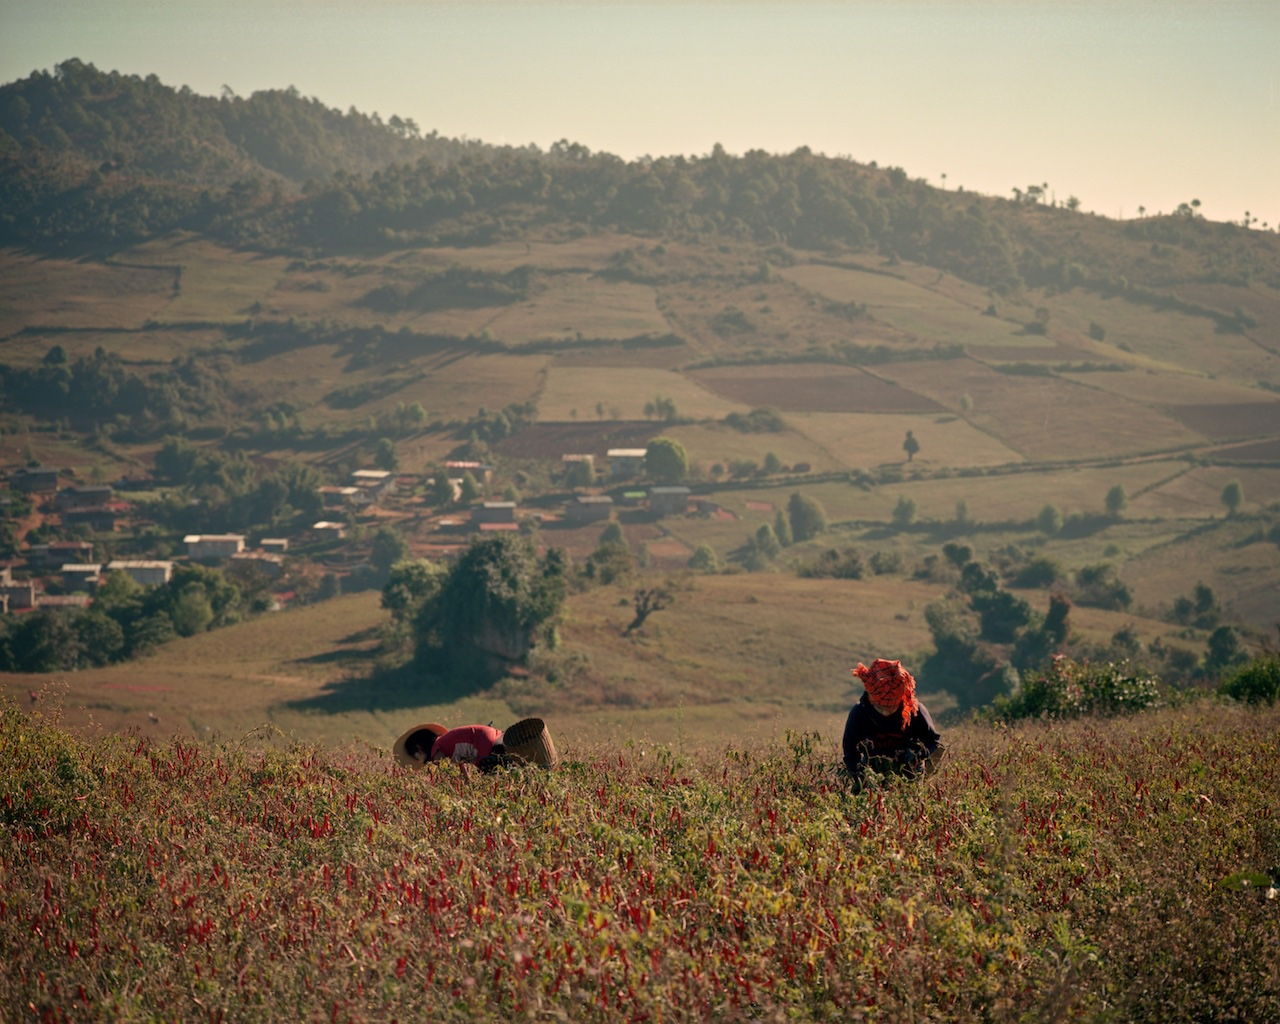 Myanmar, Kalaw to Inle Lake